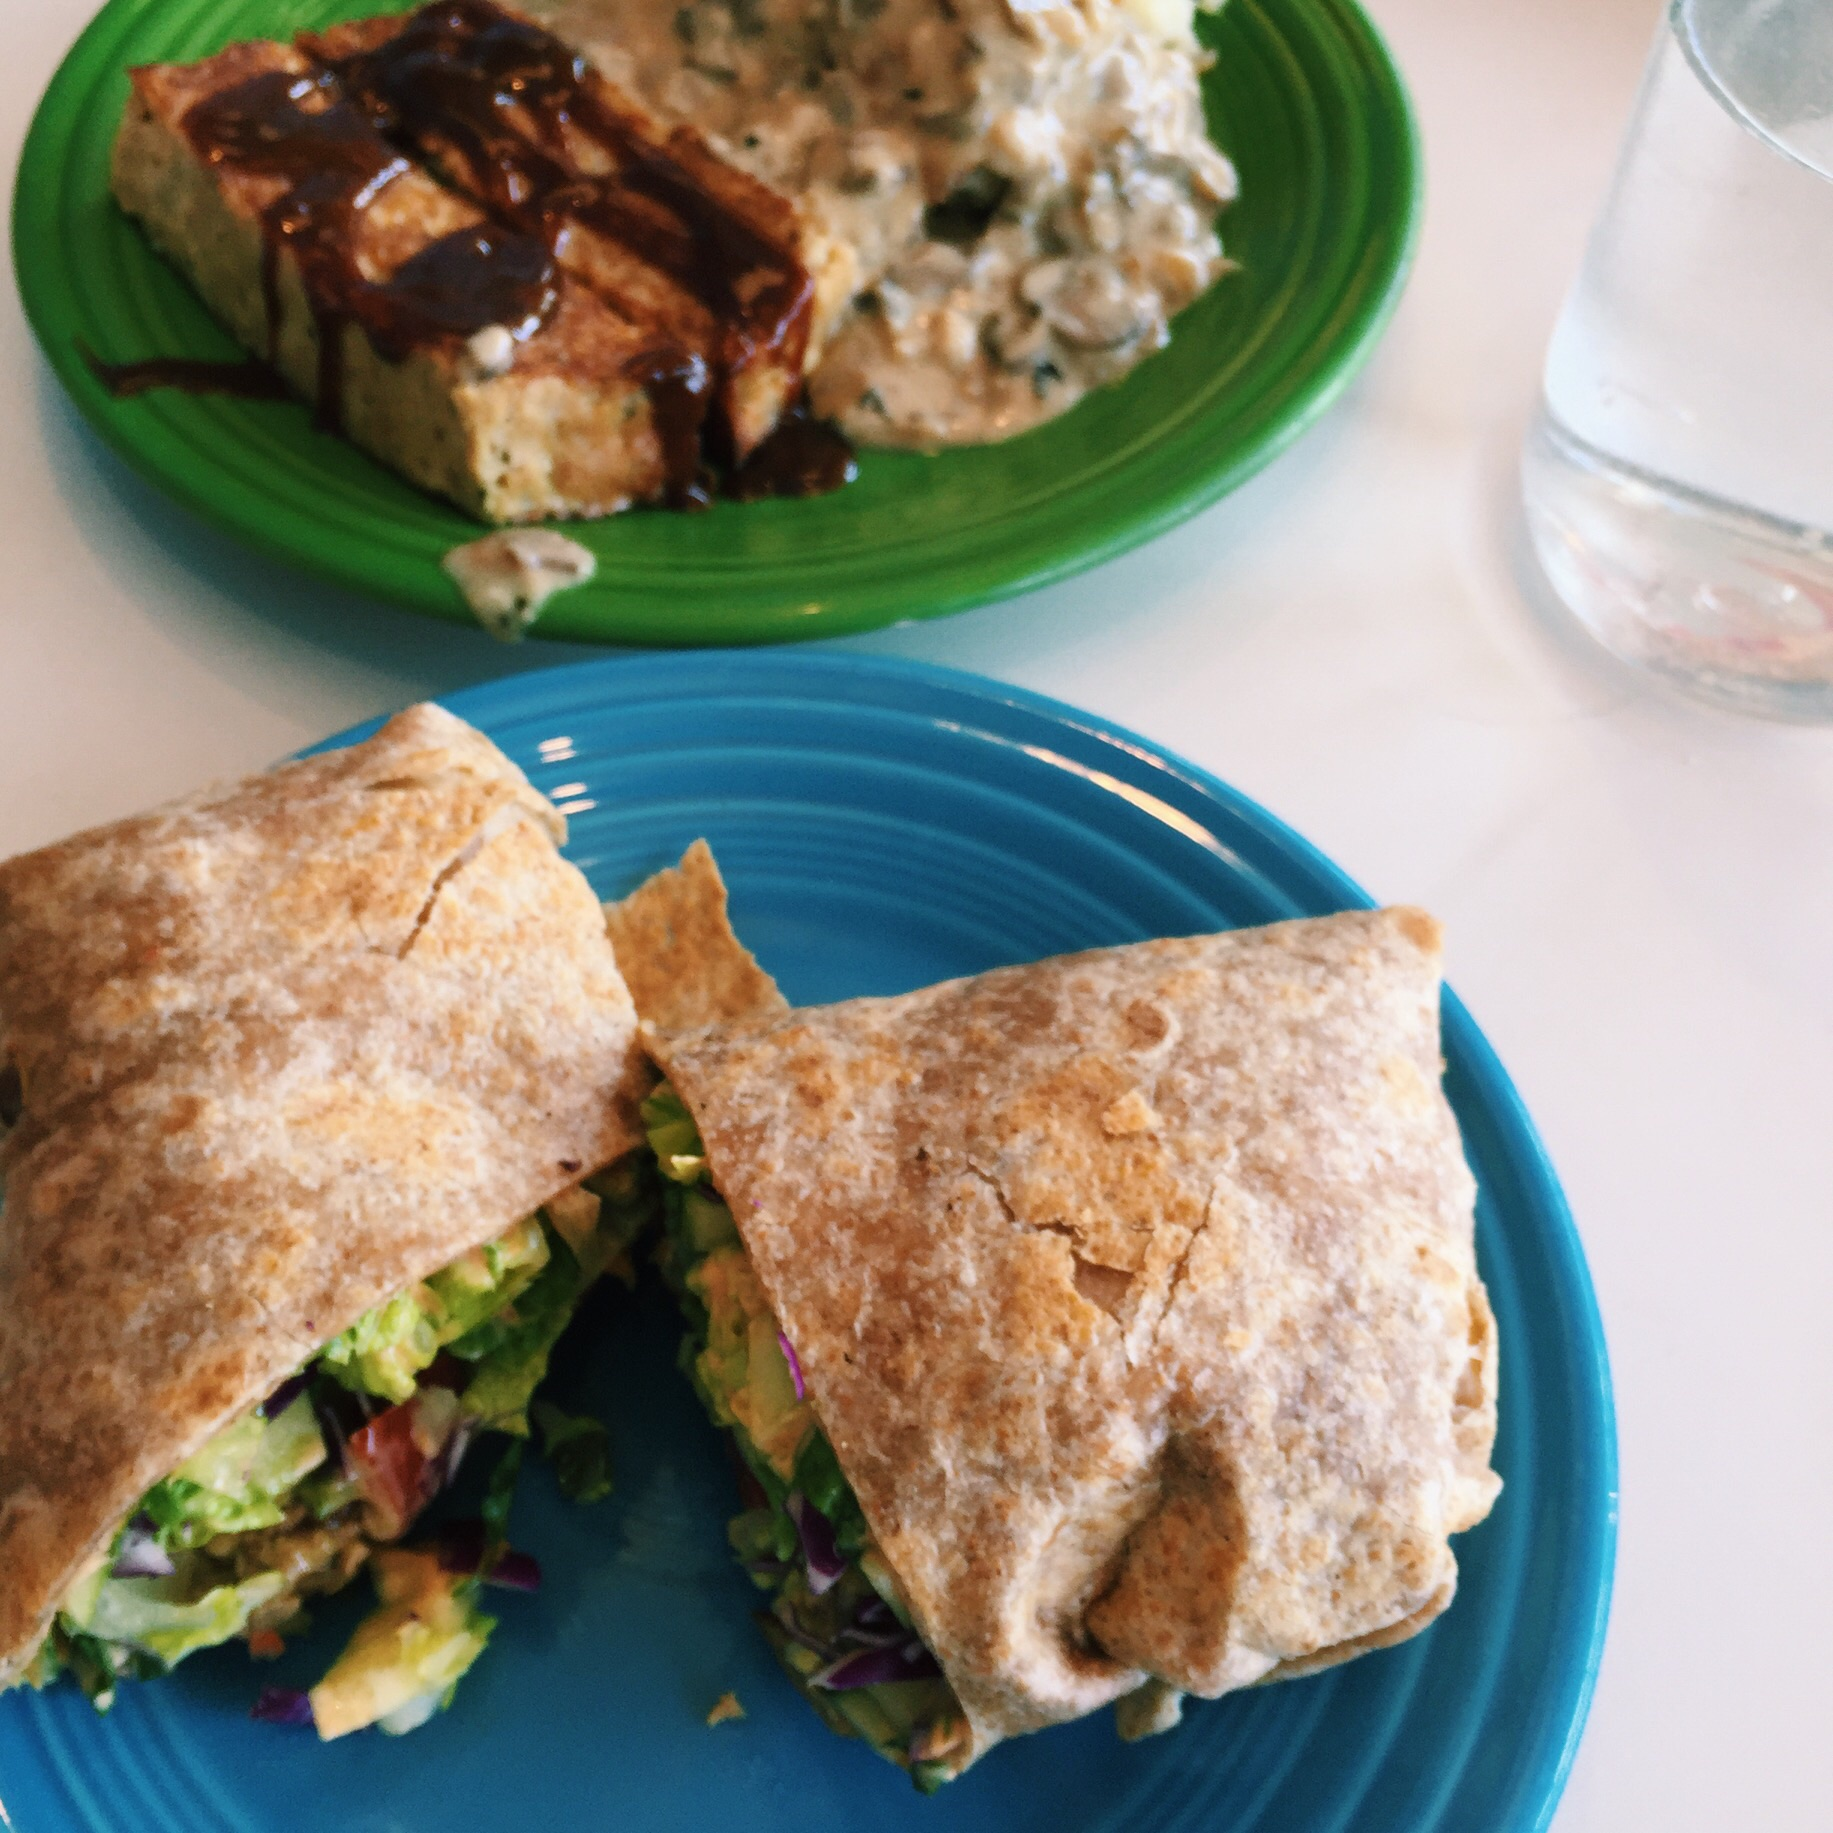 Bbq tempeh wrap and 'neat' loaf with mashed potatoes and mushroom gravy from Silence Heart Nest in Seattle.